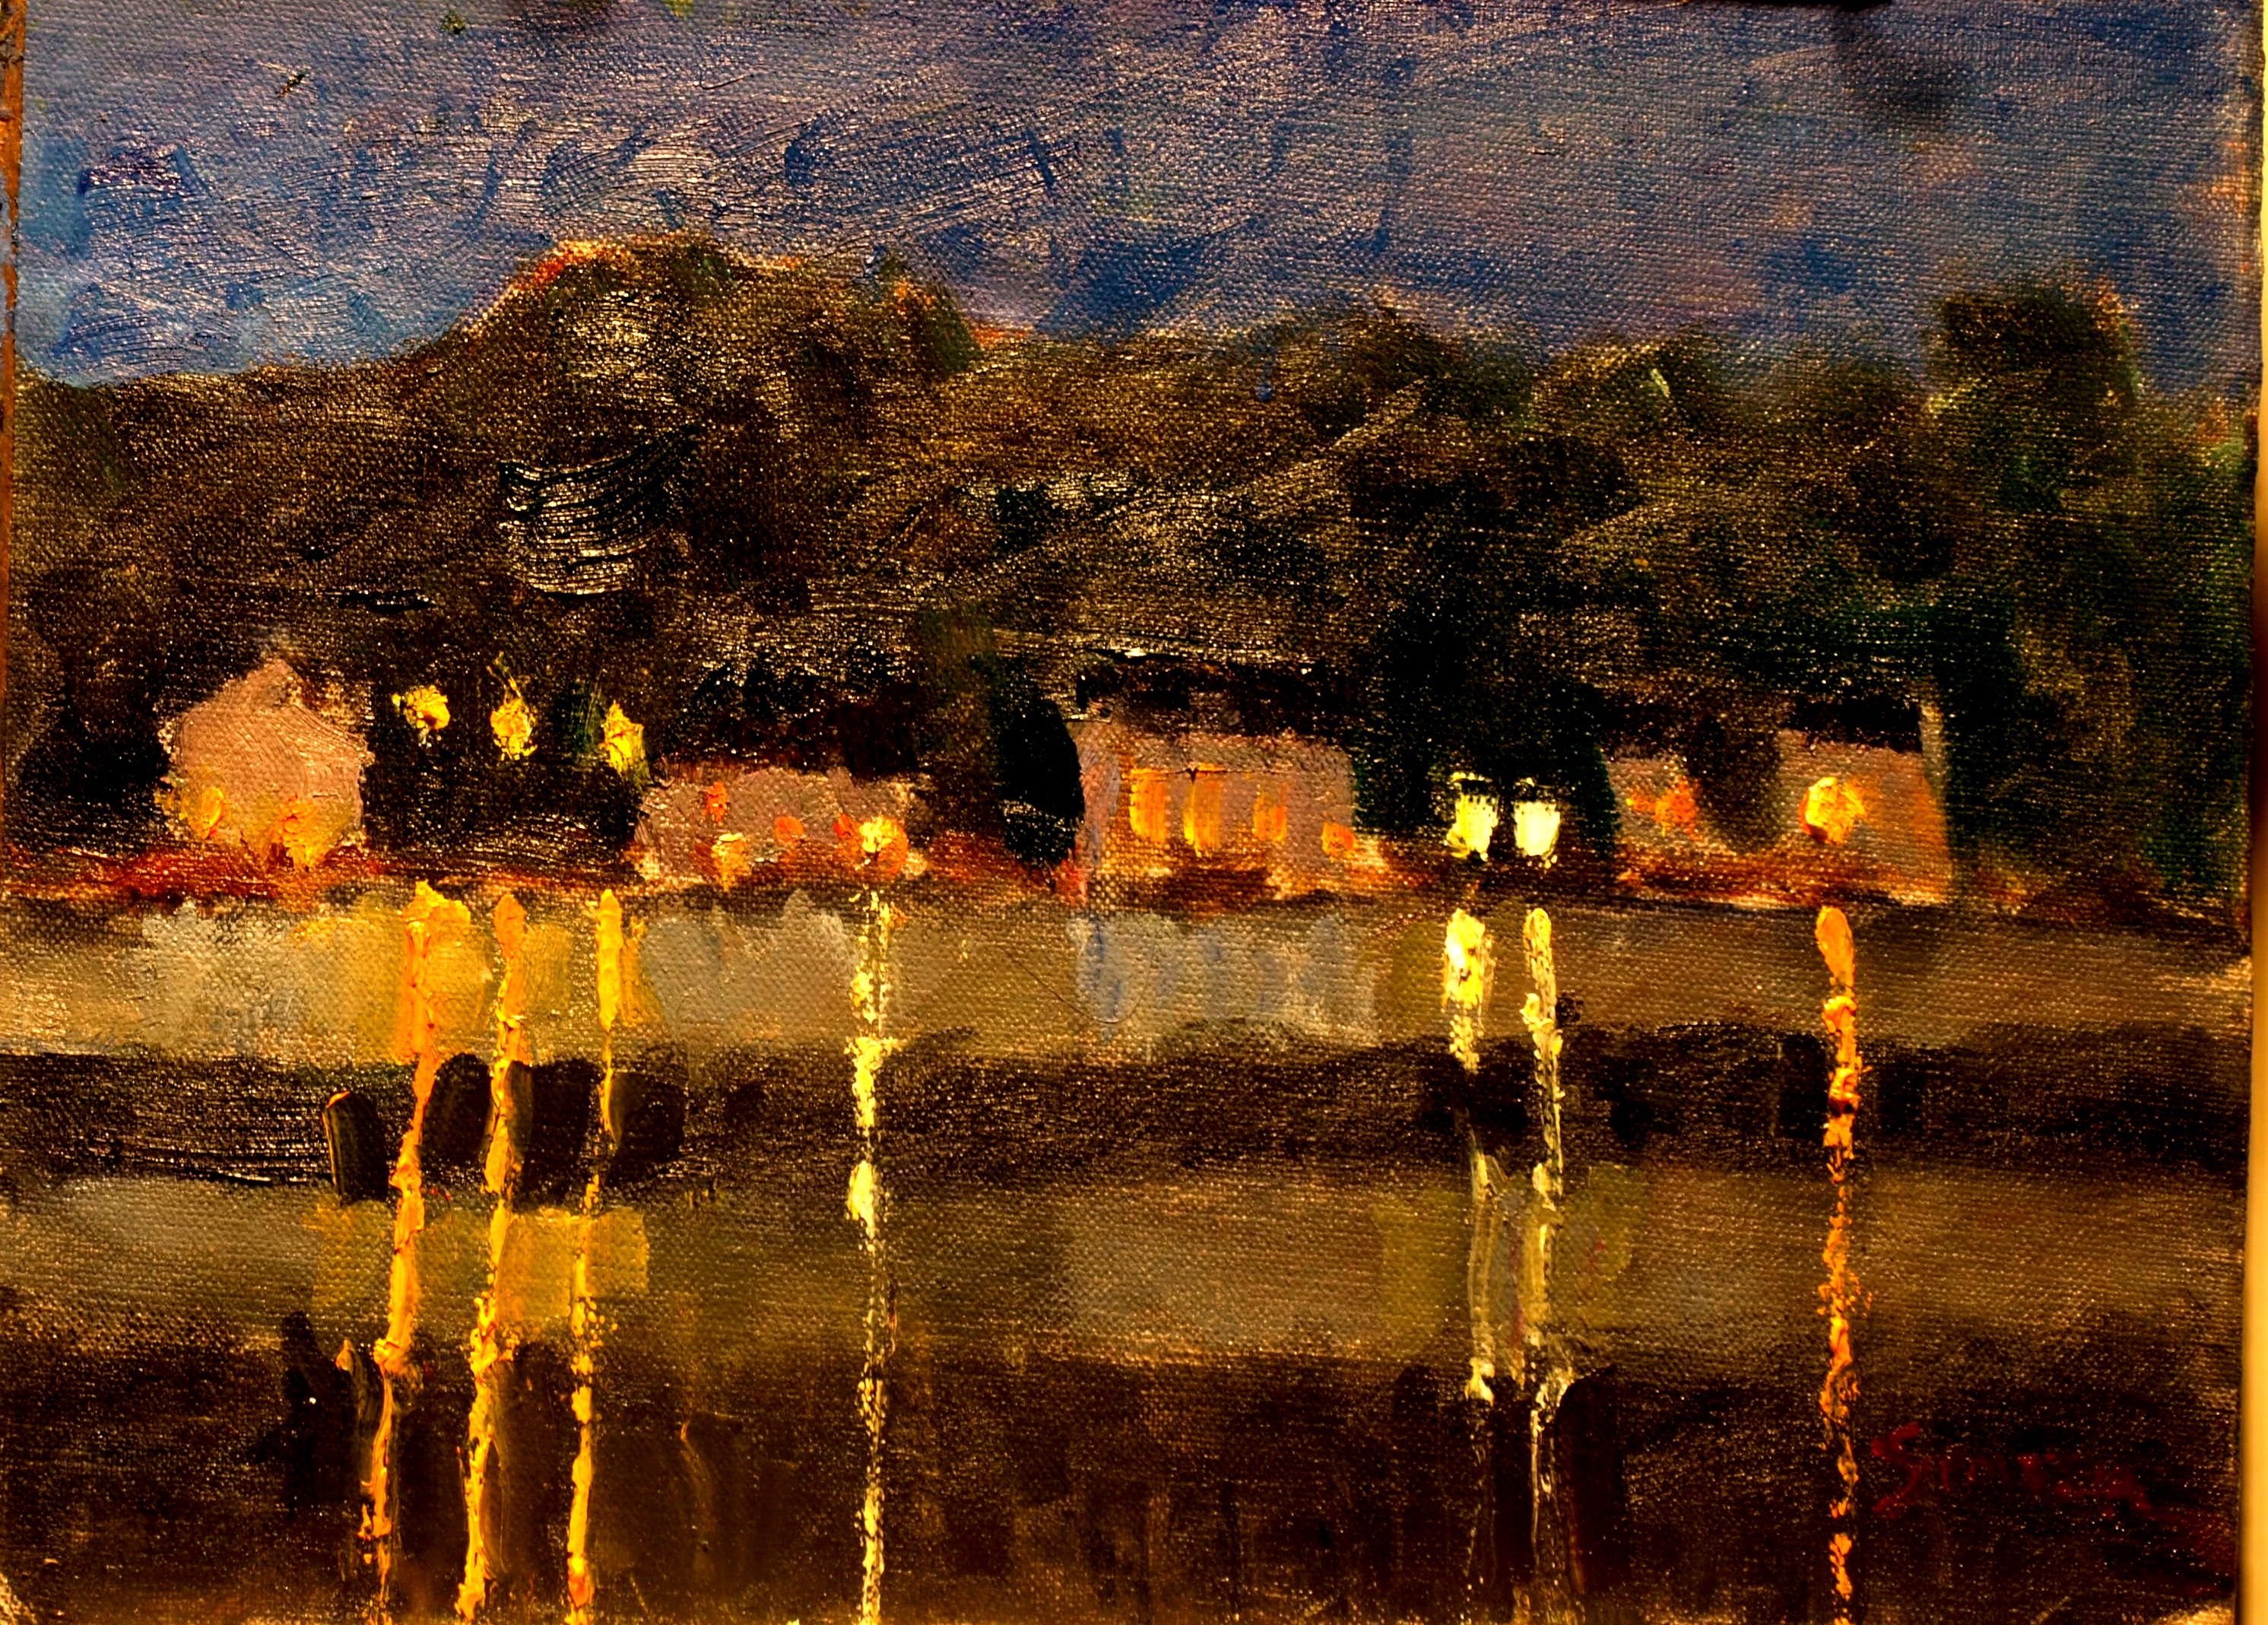 Mystic River Reflections, Oil on Canvas on Panel, 9 x 12 Inches, by Richard Stalter, $225